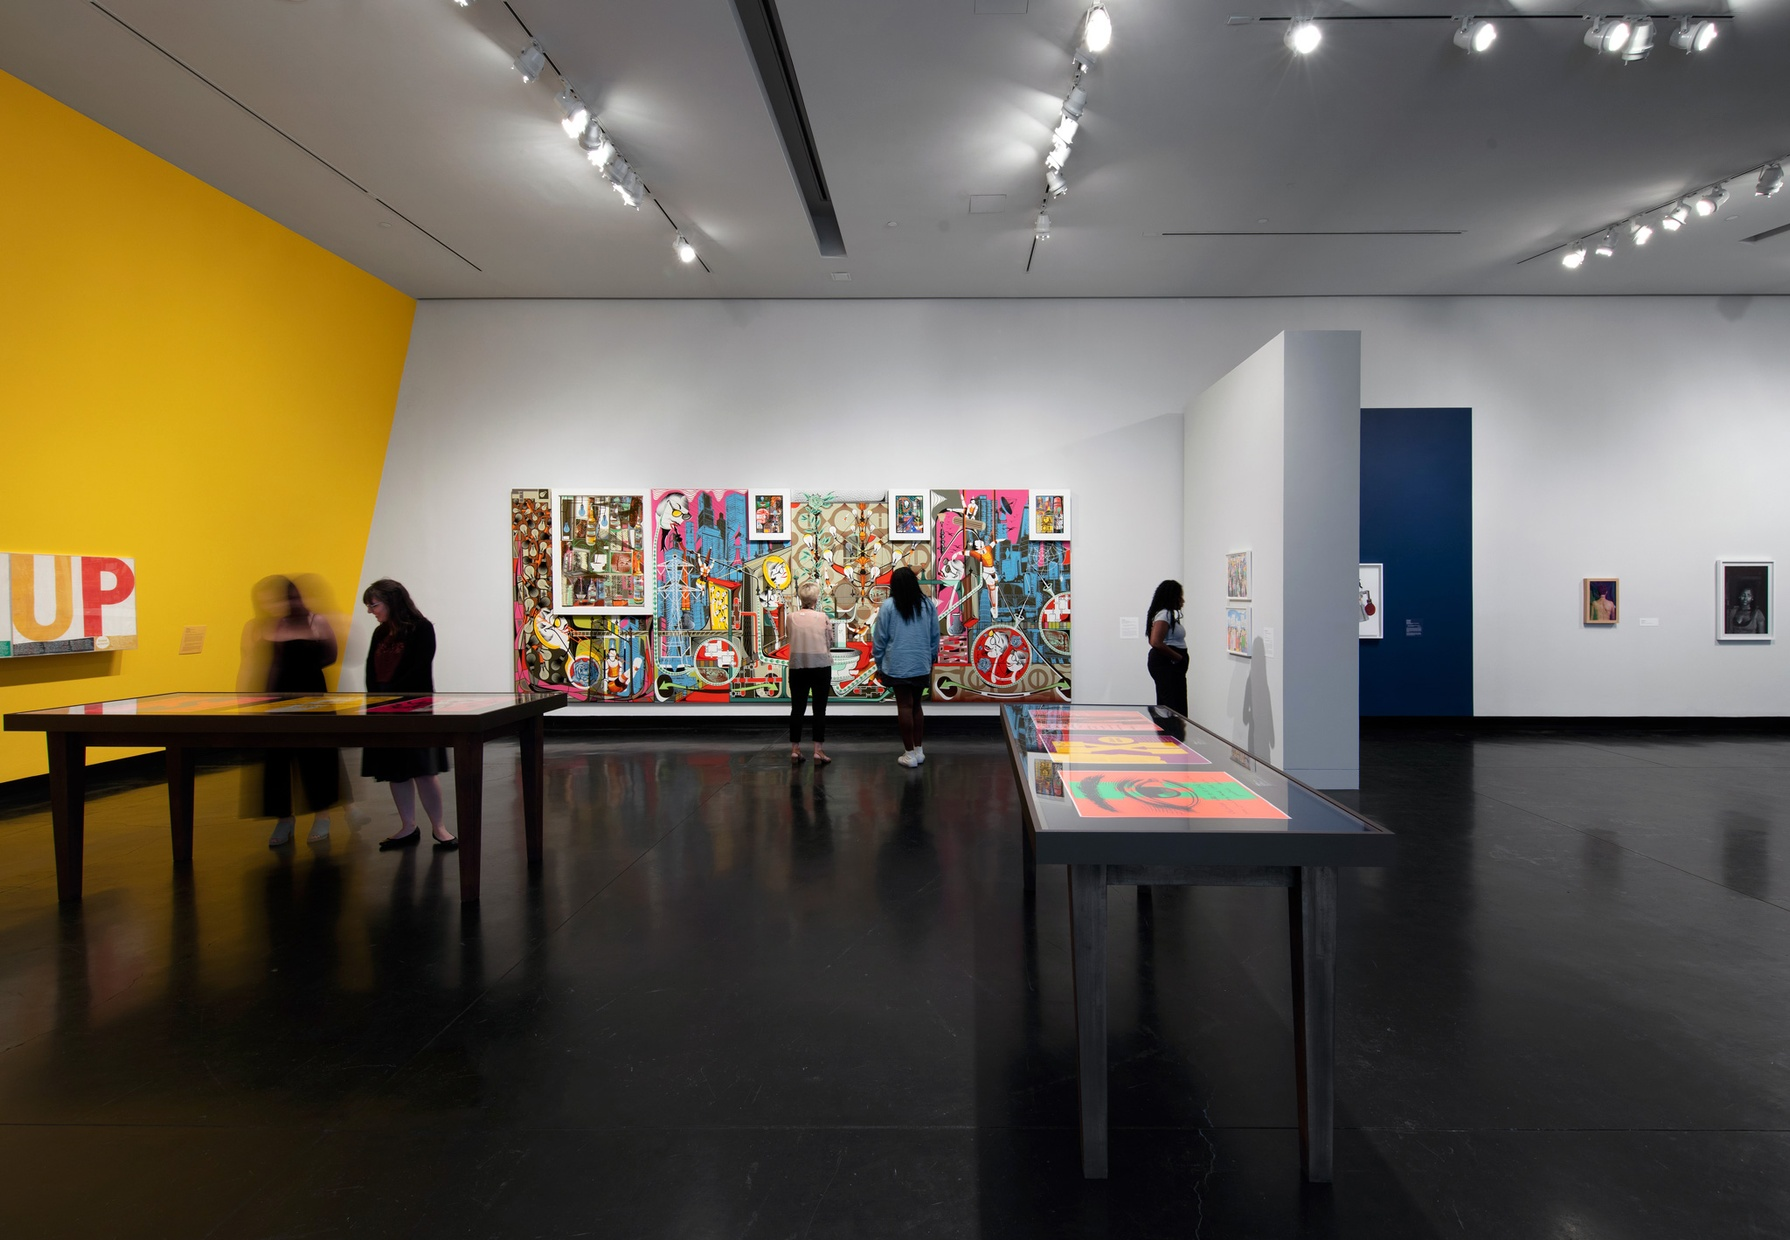 Five people look at artwork throughout a gallery space. A large, colorful abstract painting covers most of one wall.